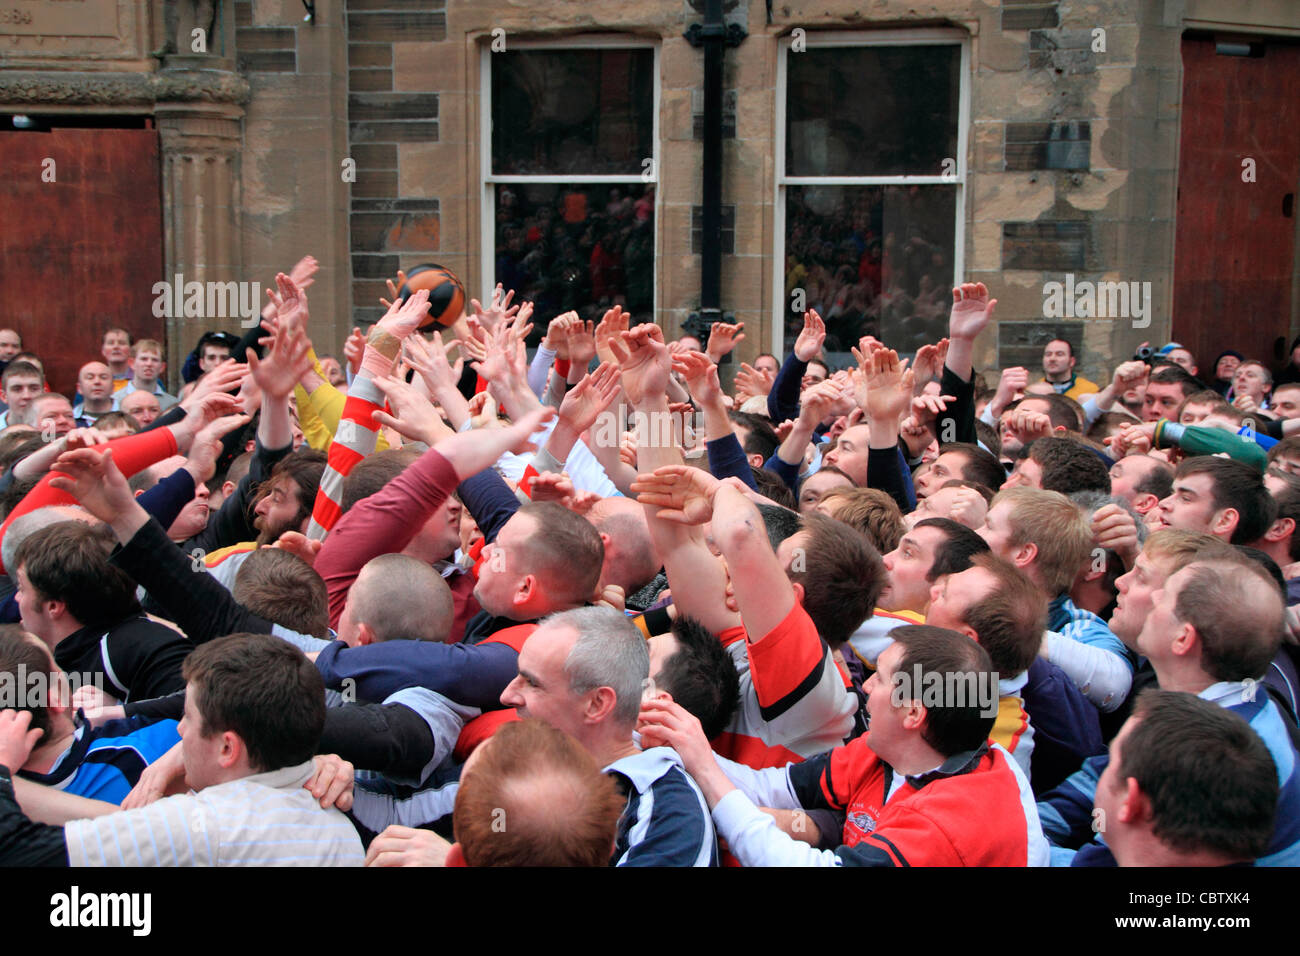 Orkney, New Year's Day Ba game - Stock Image